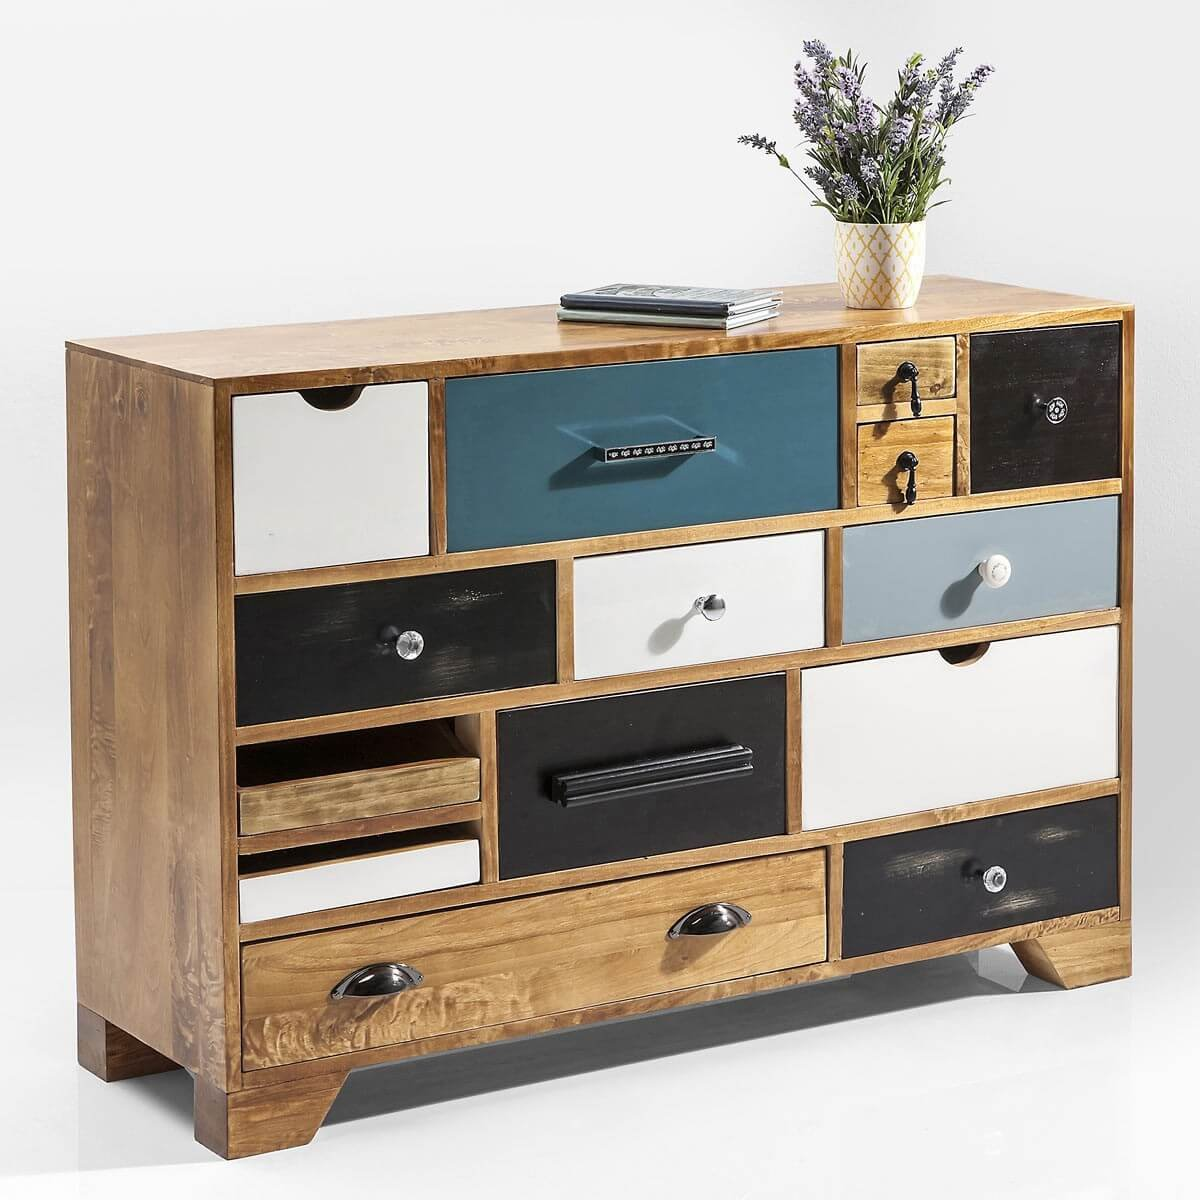 kommode design stunning finest great ikea leksvik kommode wei ikea malm kommode hochglanz home. Black Bedroom Furniture Sets. Home Design Ideas